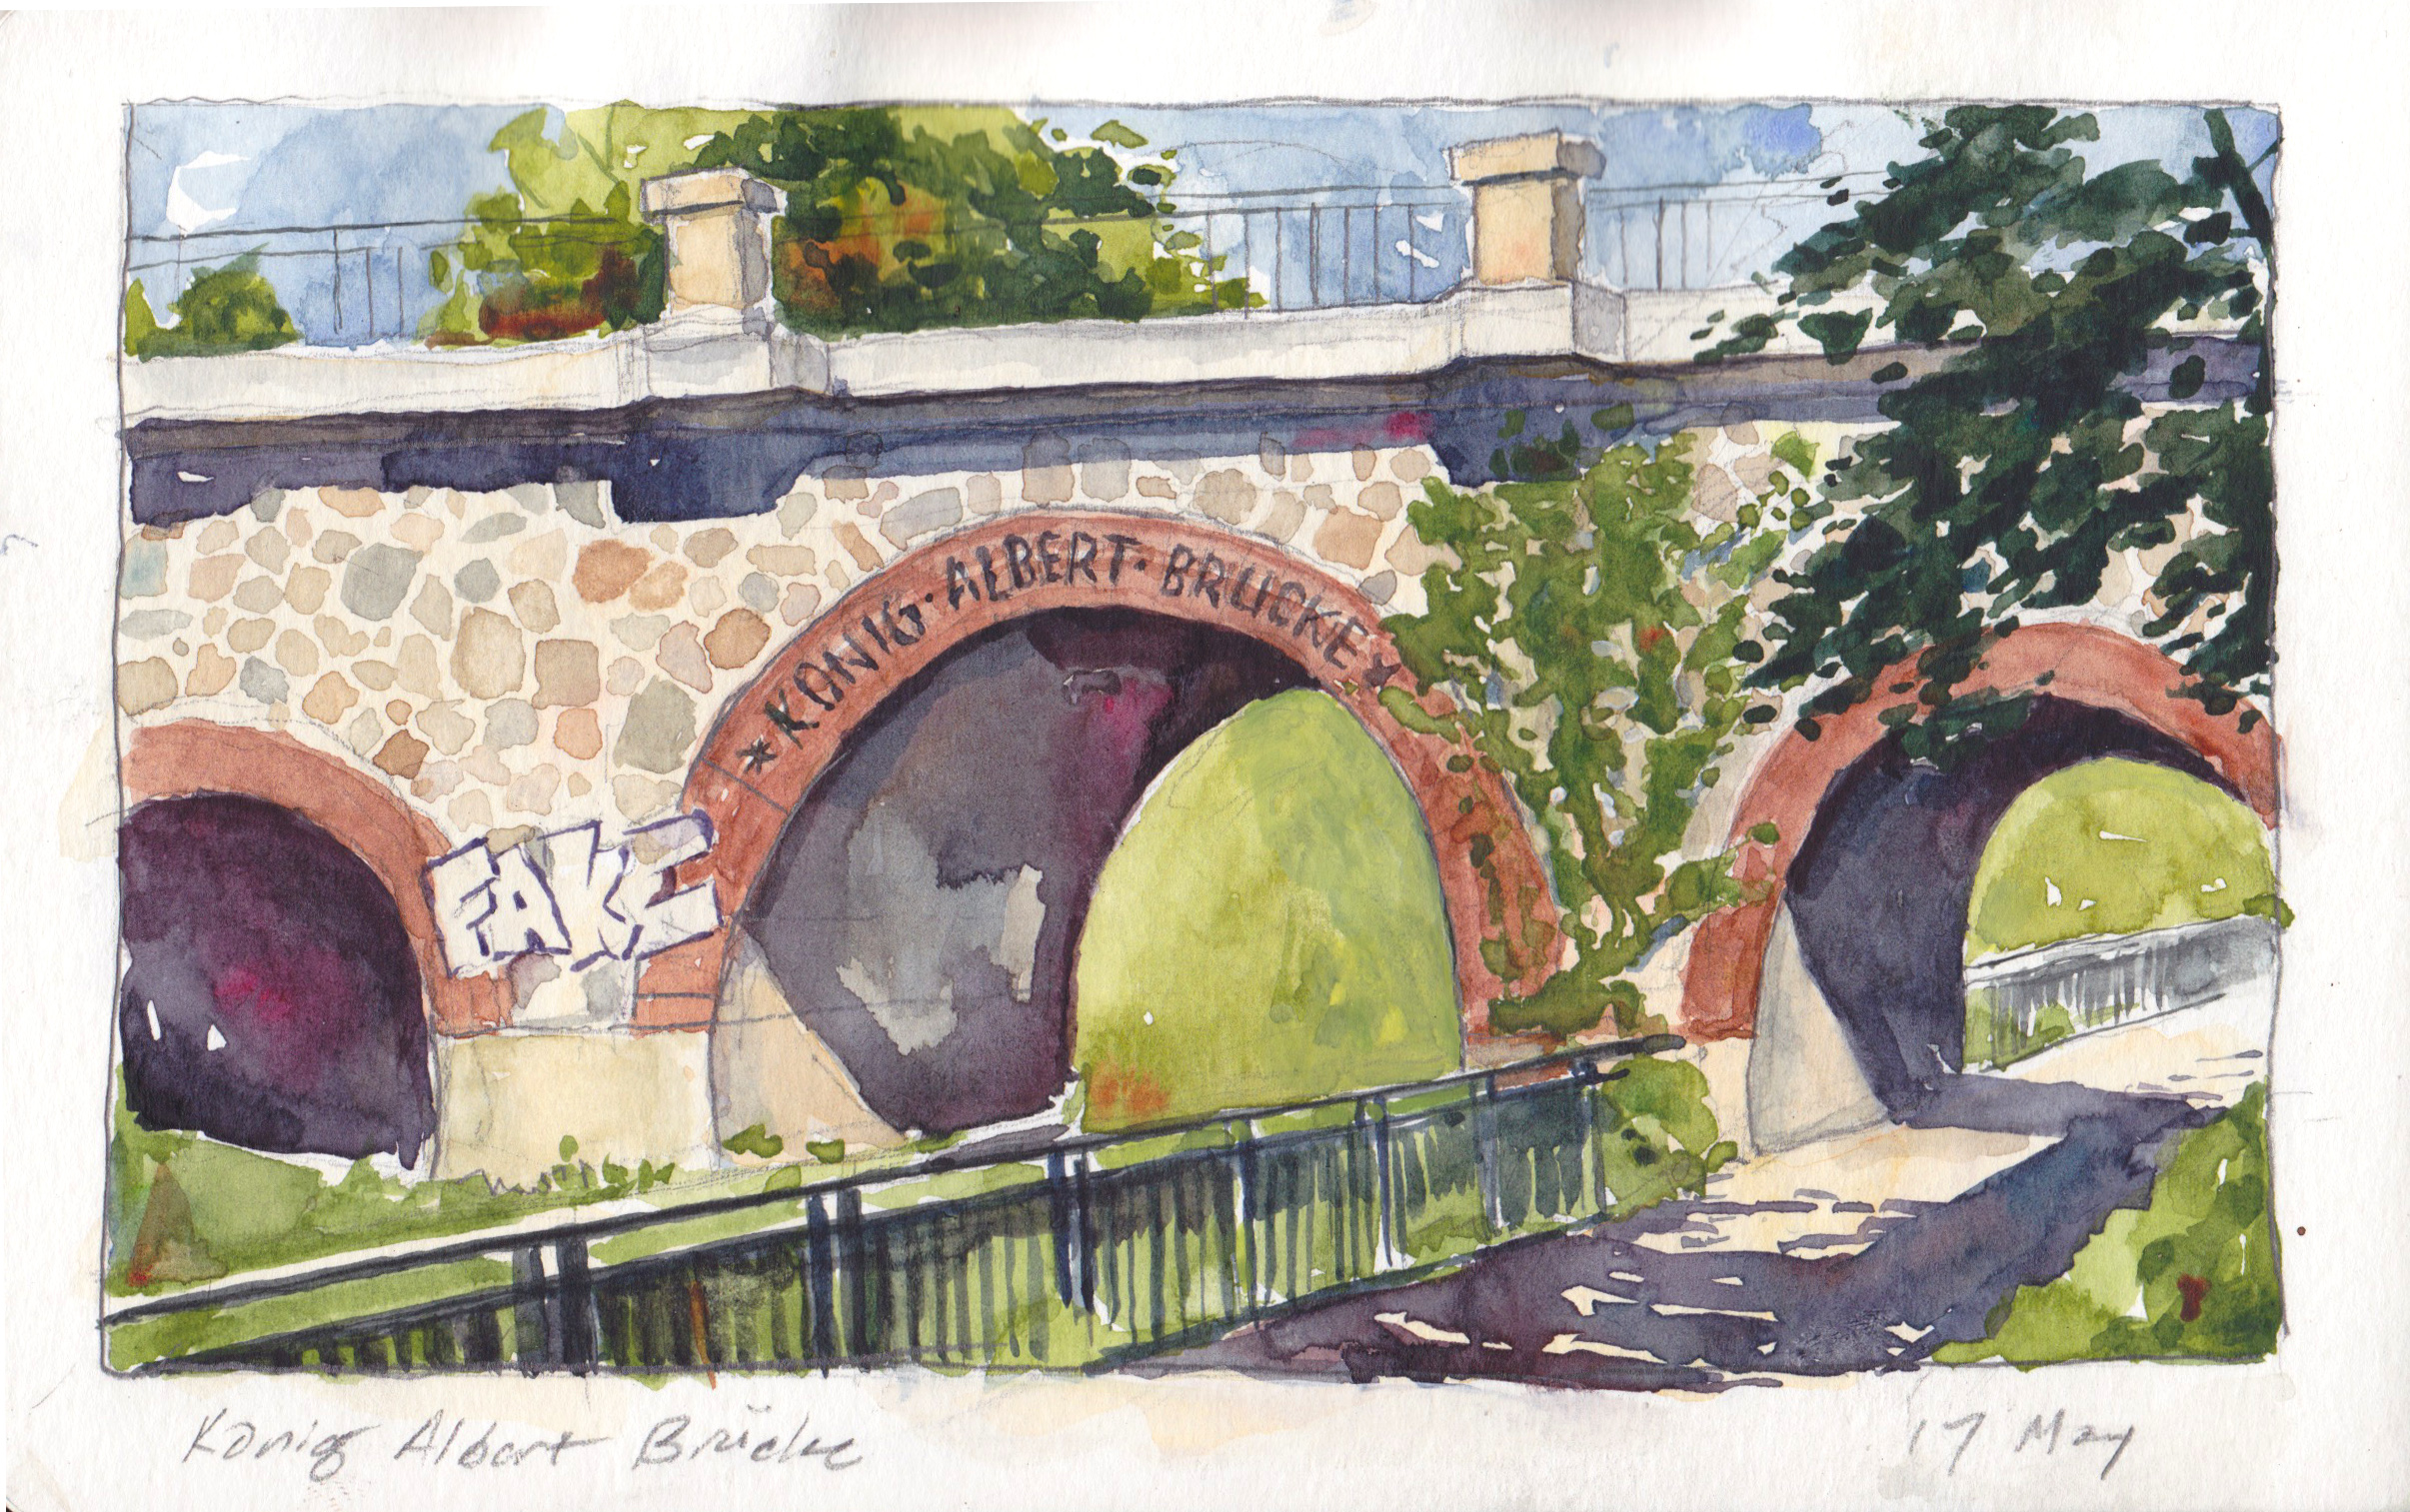 Here's the picturesque Konig Albert Brücke over the Karl Heine Canal. It's on what's basically the San Antonio Riverwalk of Leipzig. This is more of a completed painting than the other stuff–I embedded my stool in a dirt embankment above the sidewalk and painted for a couple of hours.